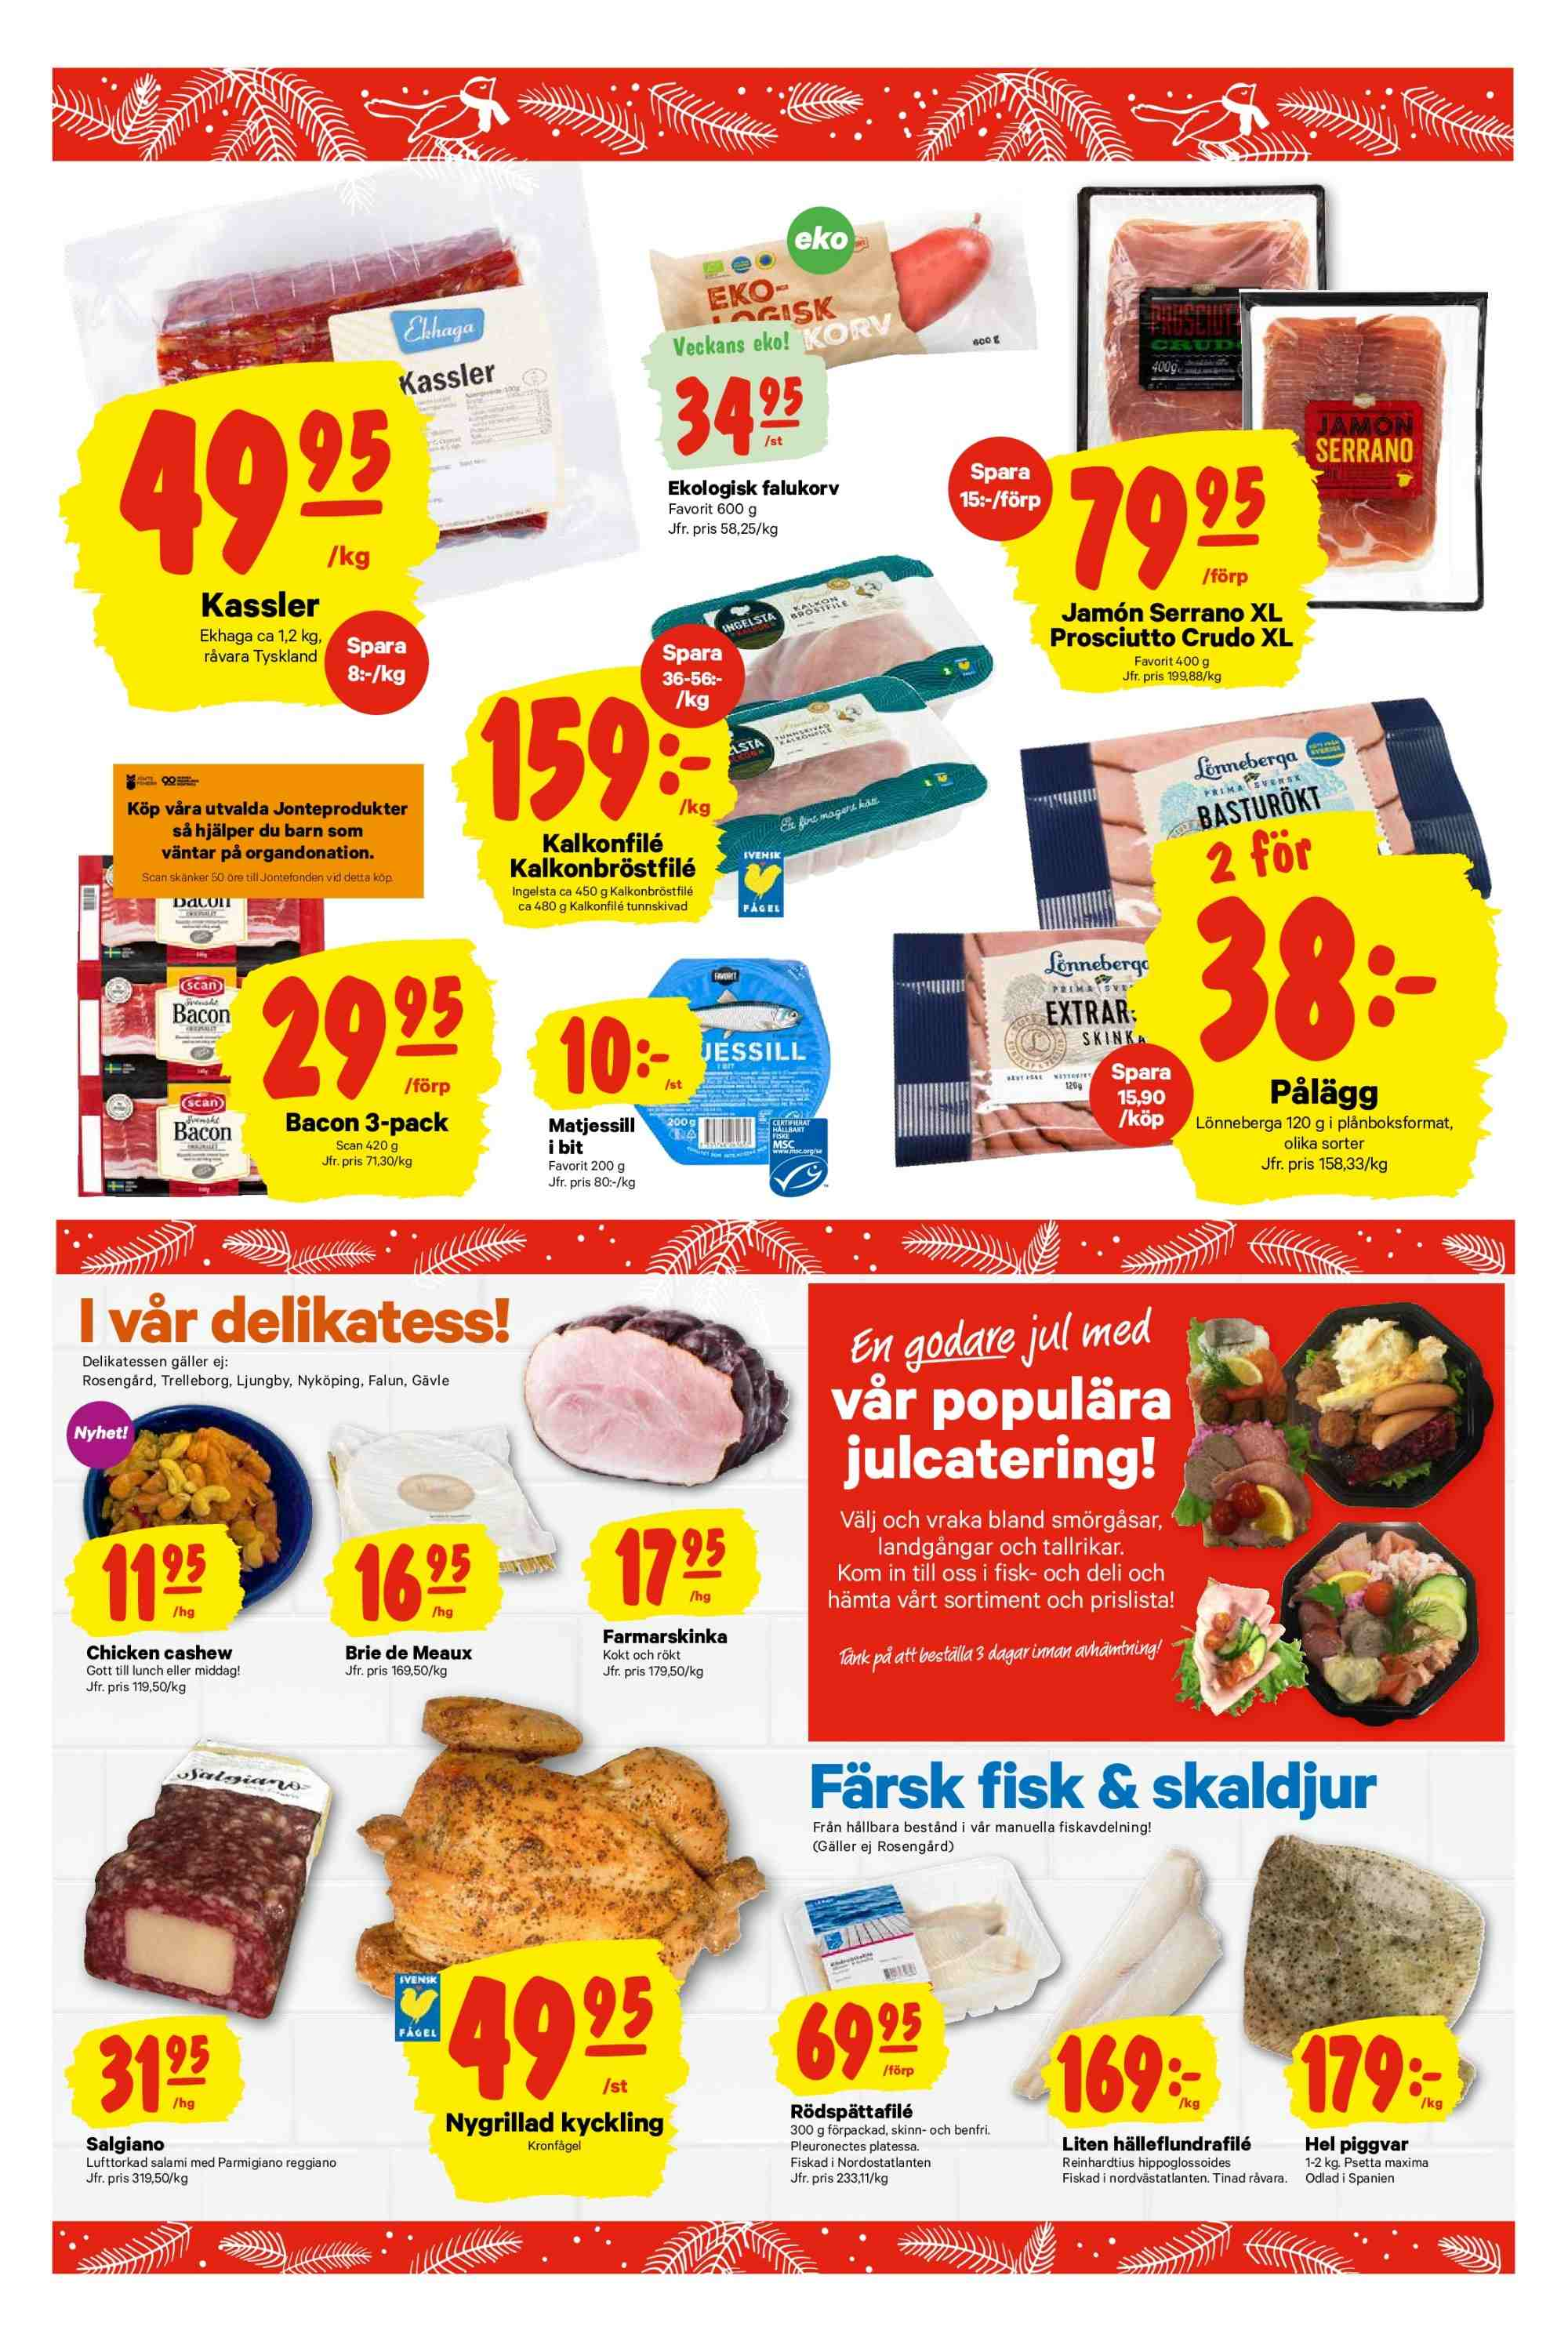 City Gross reklamblad - 26/11 2018 - 2/12 2018. Sida 3.